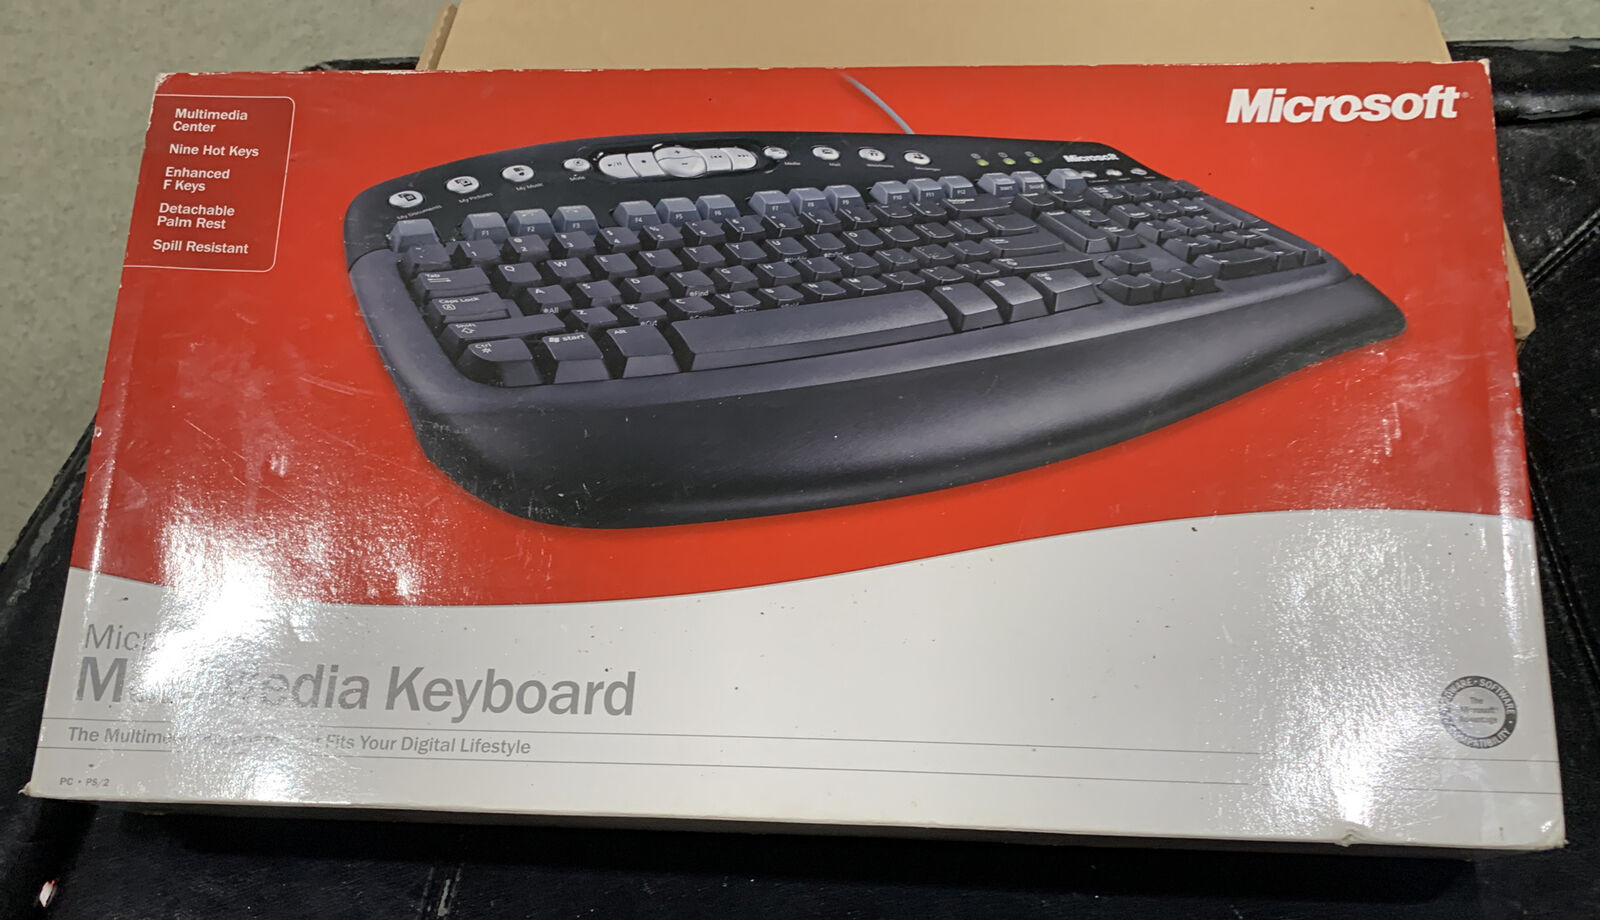 MICROSOFT MultiMedia Keyboard PS/2 Port NEW. Buy it now for 45.00